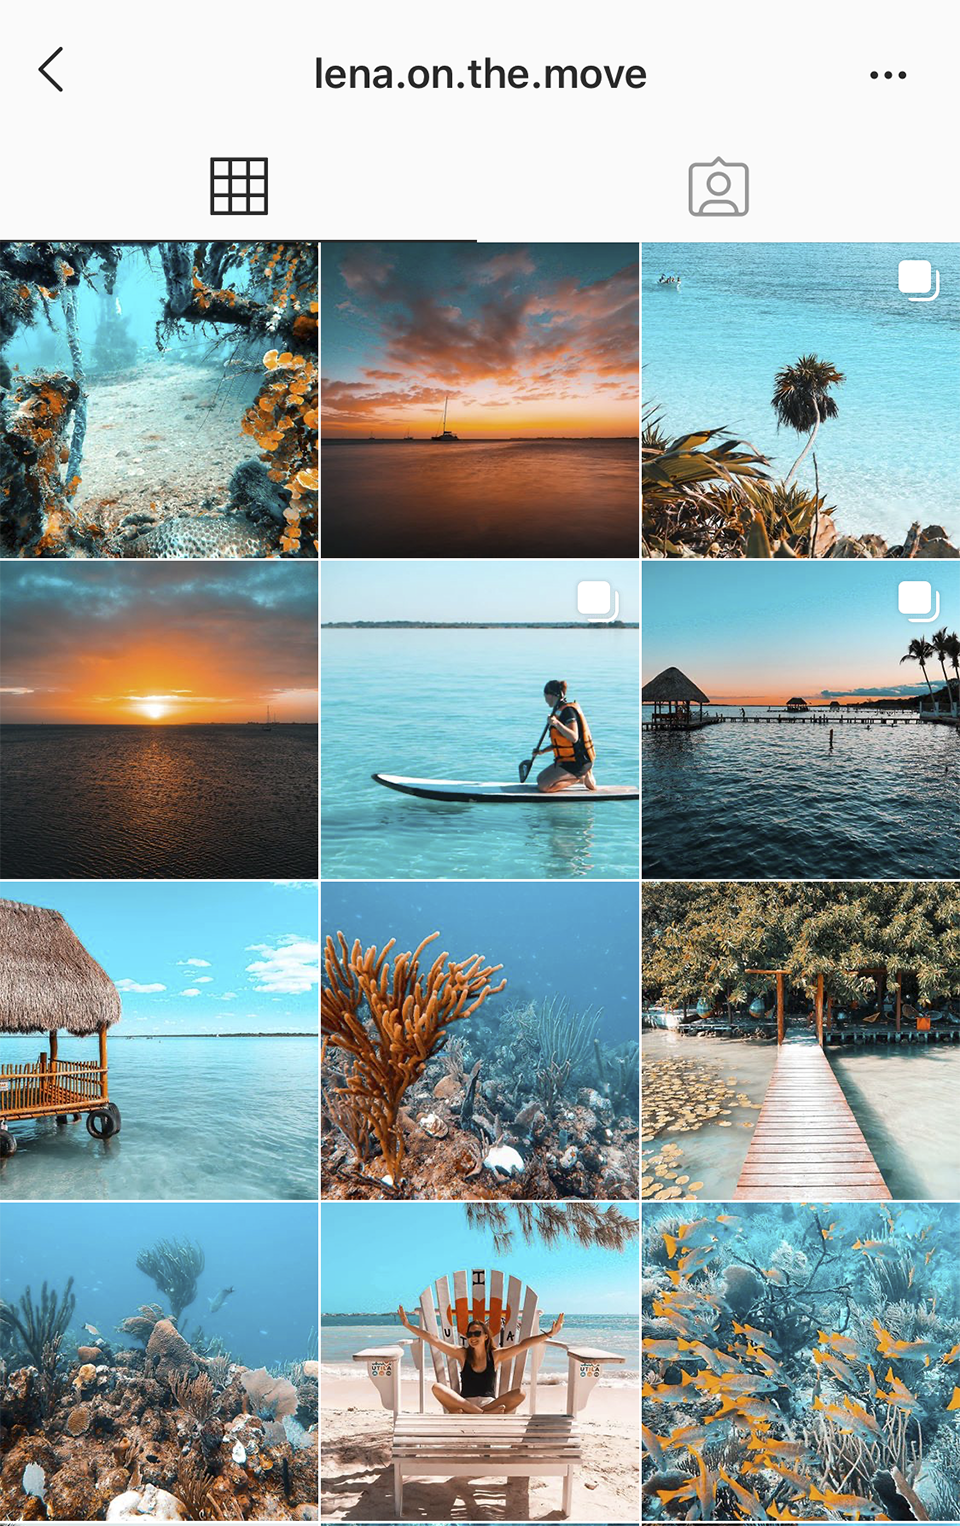 @lena.on.the.move uses a teal and orange pantone on her images